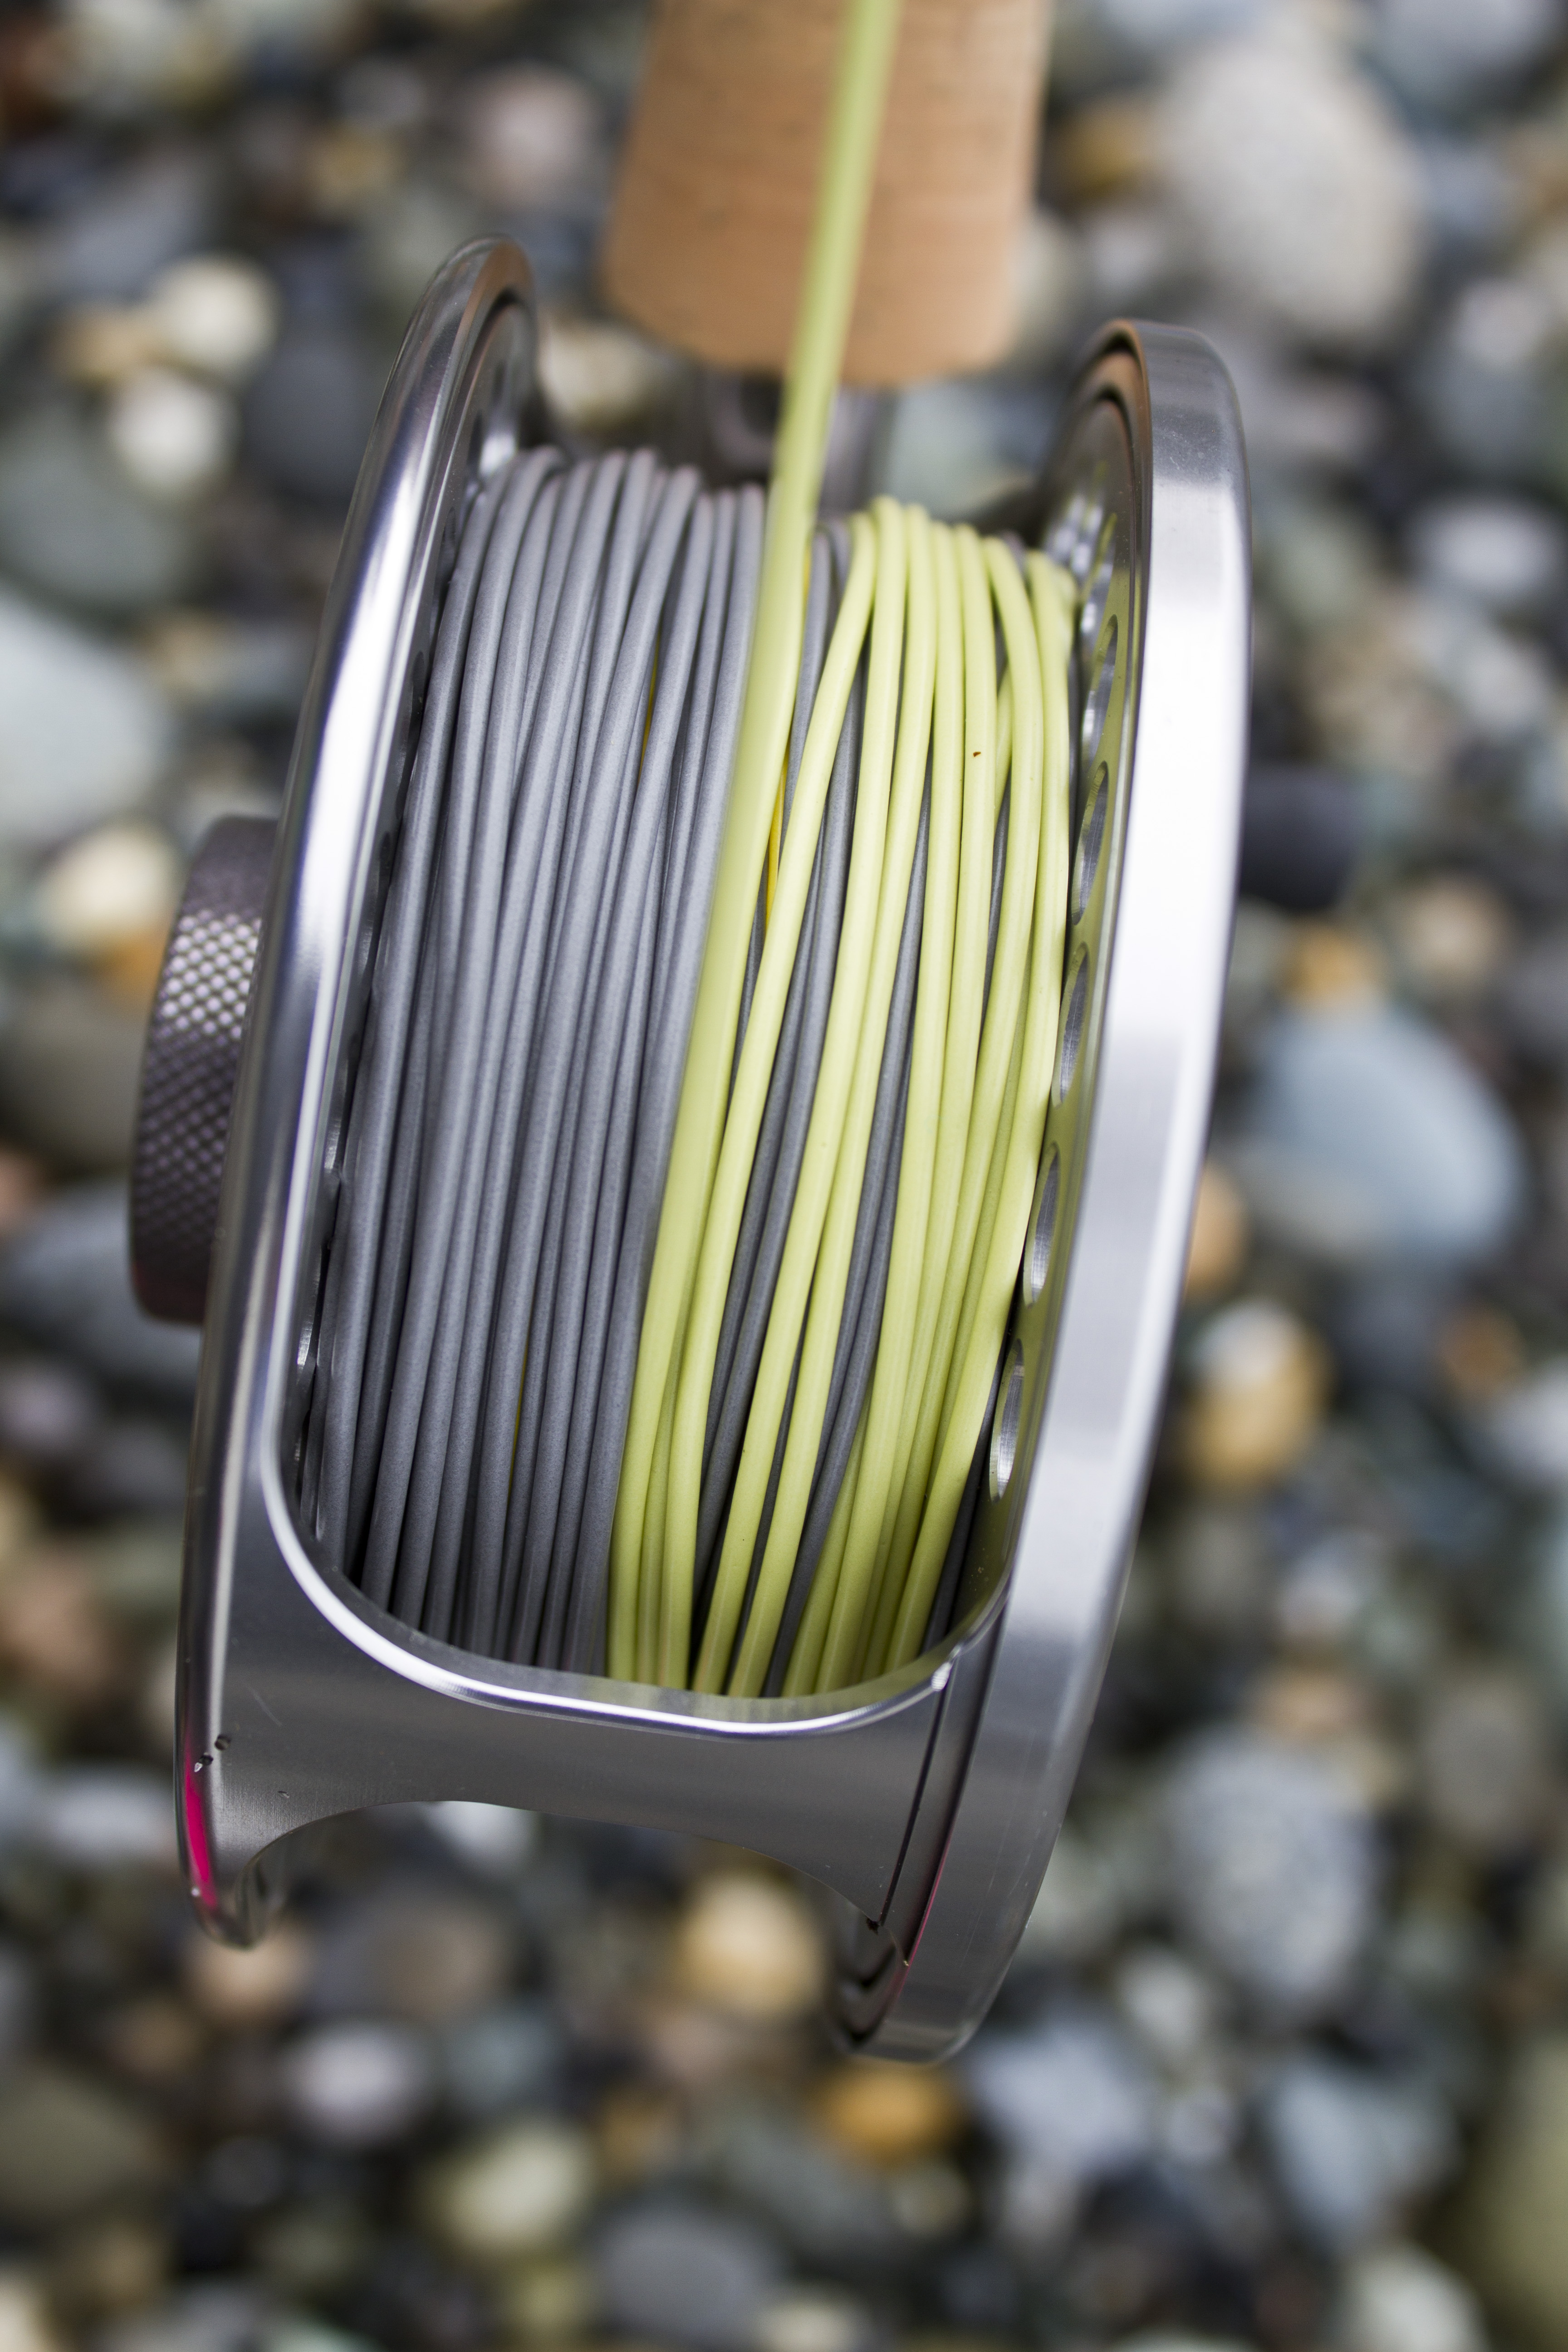 The Okuma Helios holds up to 250 yards of line in the 8wt model.